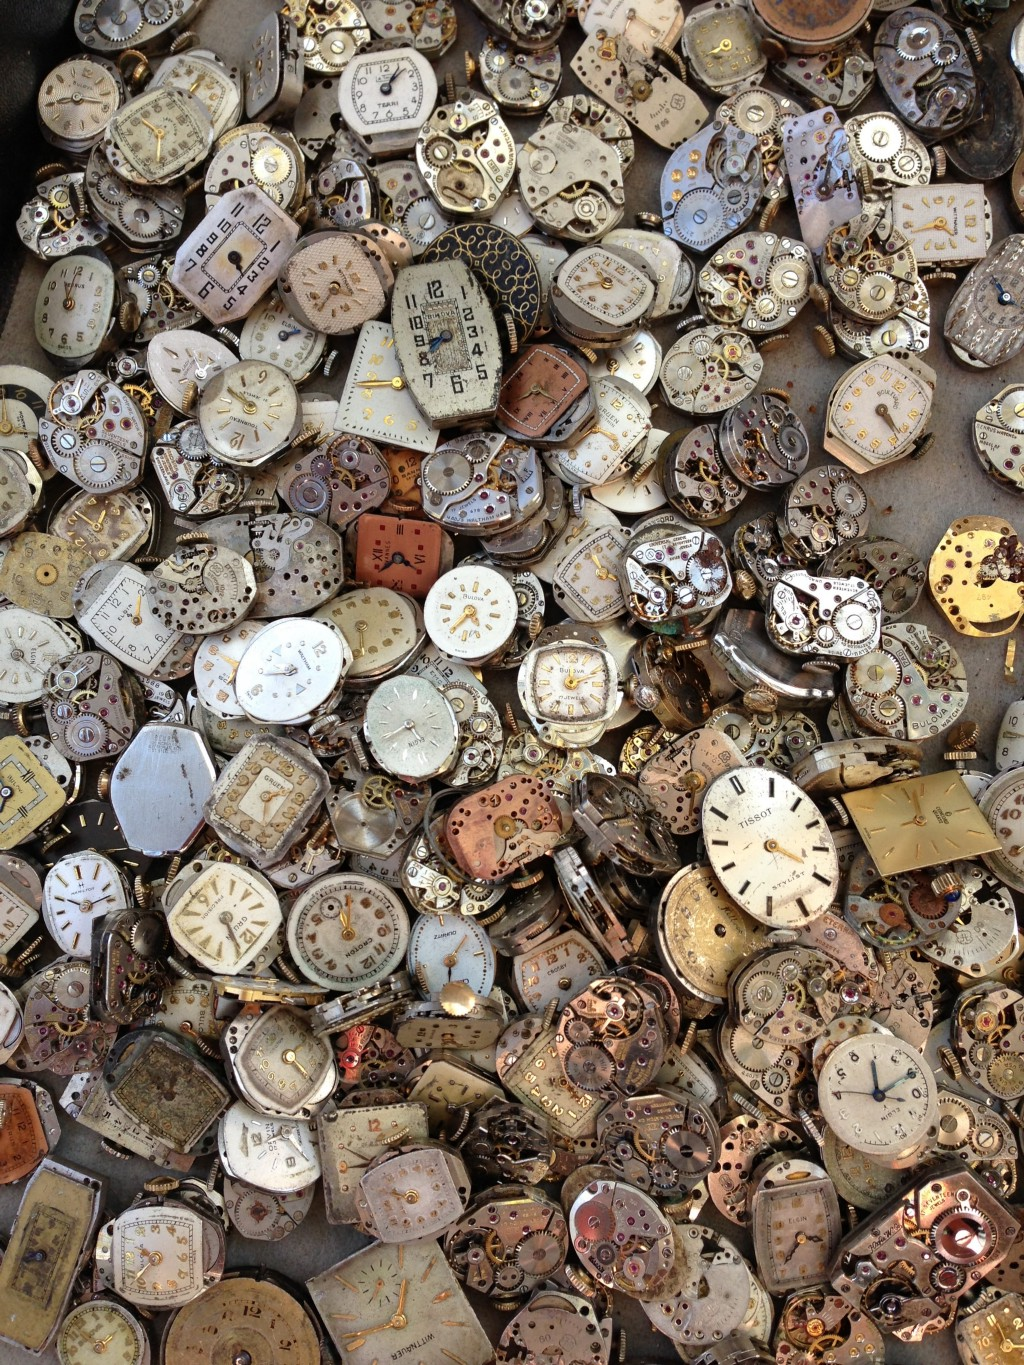 A handful of old and decrepit wrist watches.